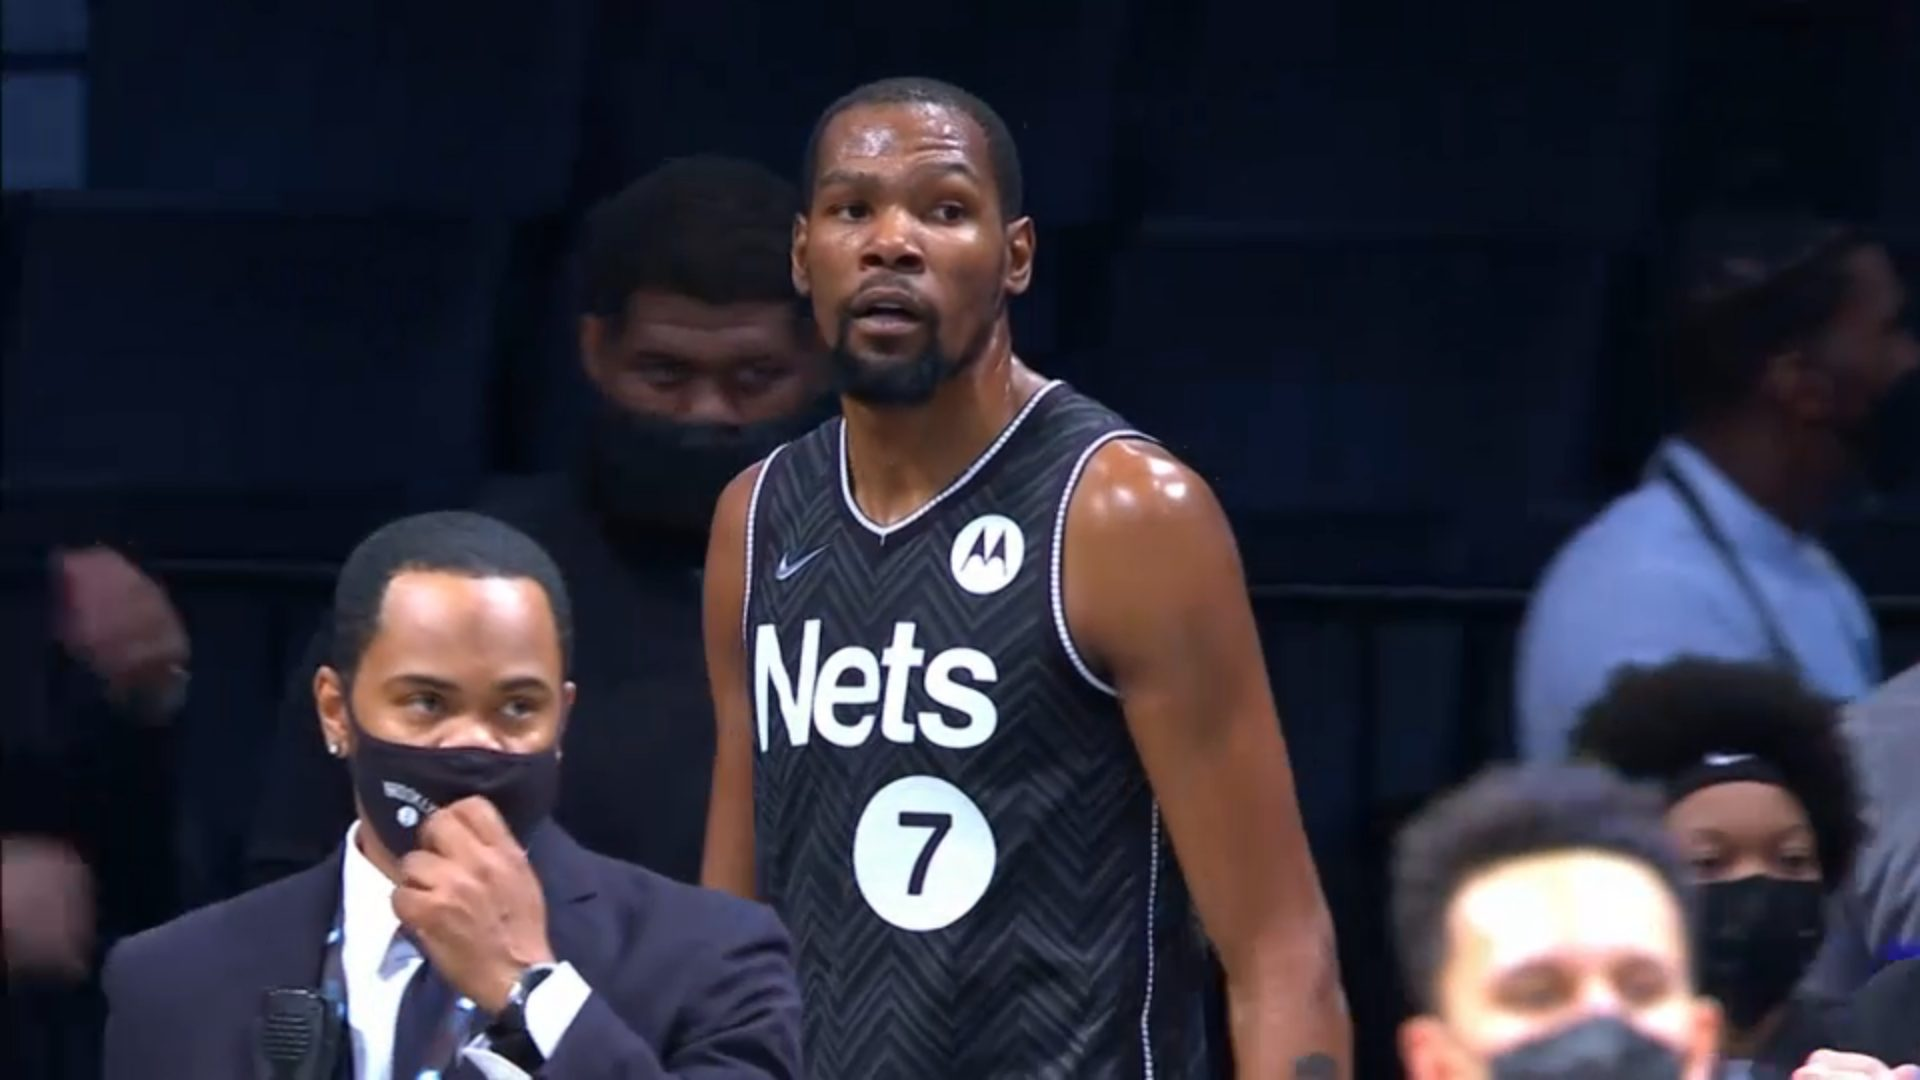 Kevin Durant Nets 26 avril 2021